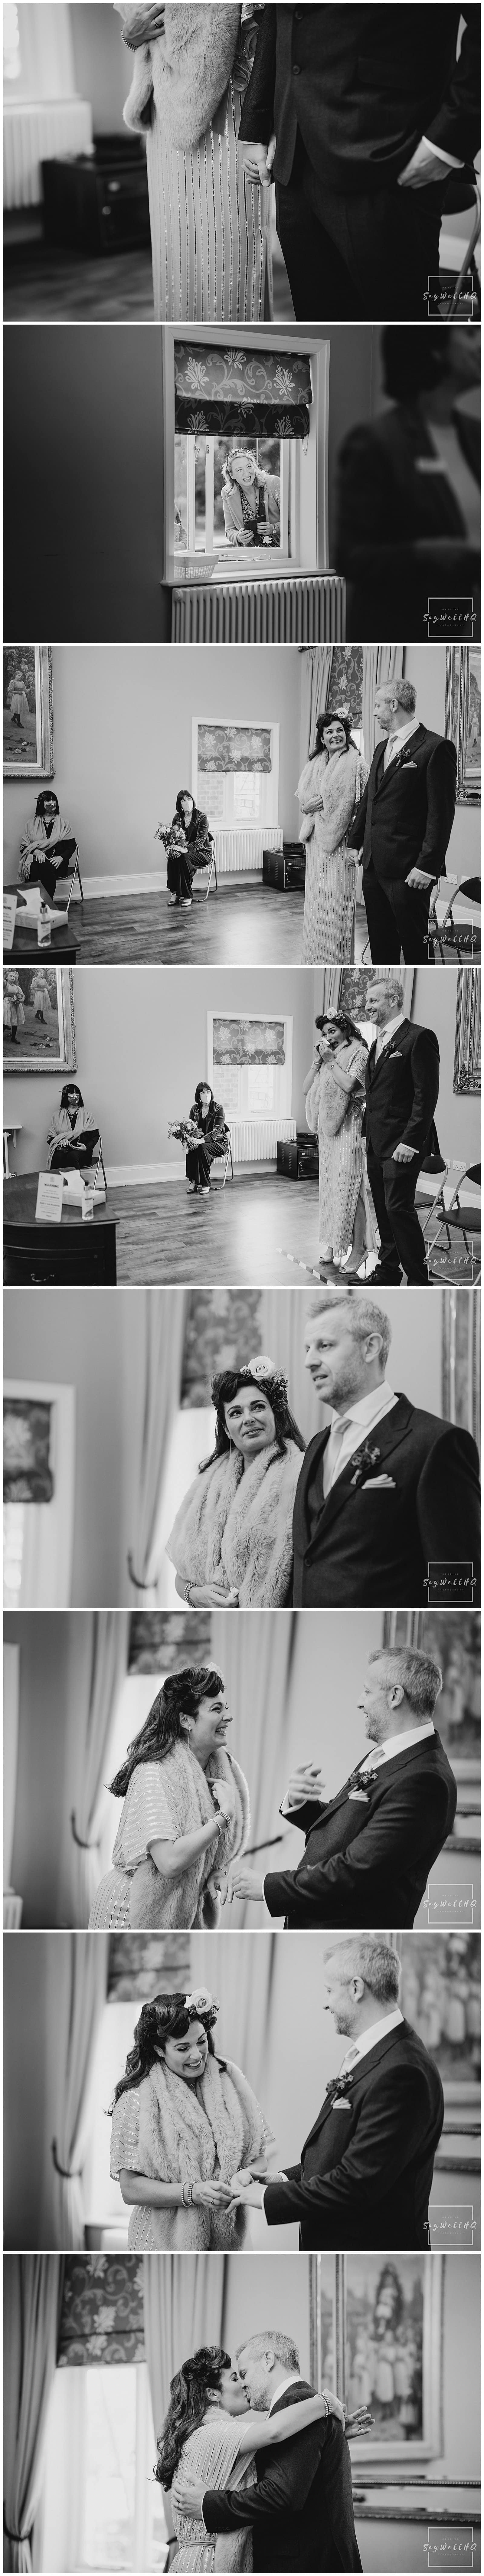 Bride and Groom exchange their vows and rings at their covid restricted wedding at bridgford hall in west bridgford nottingham